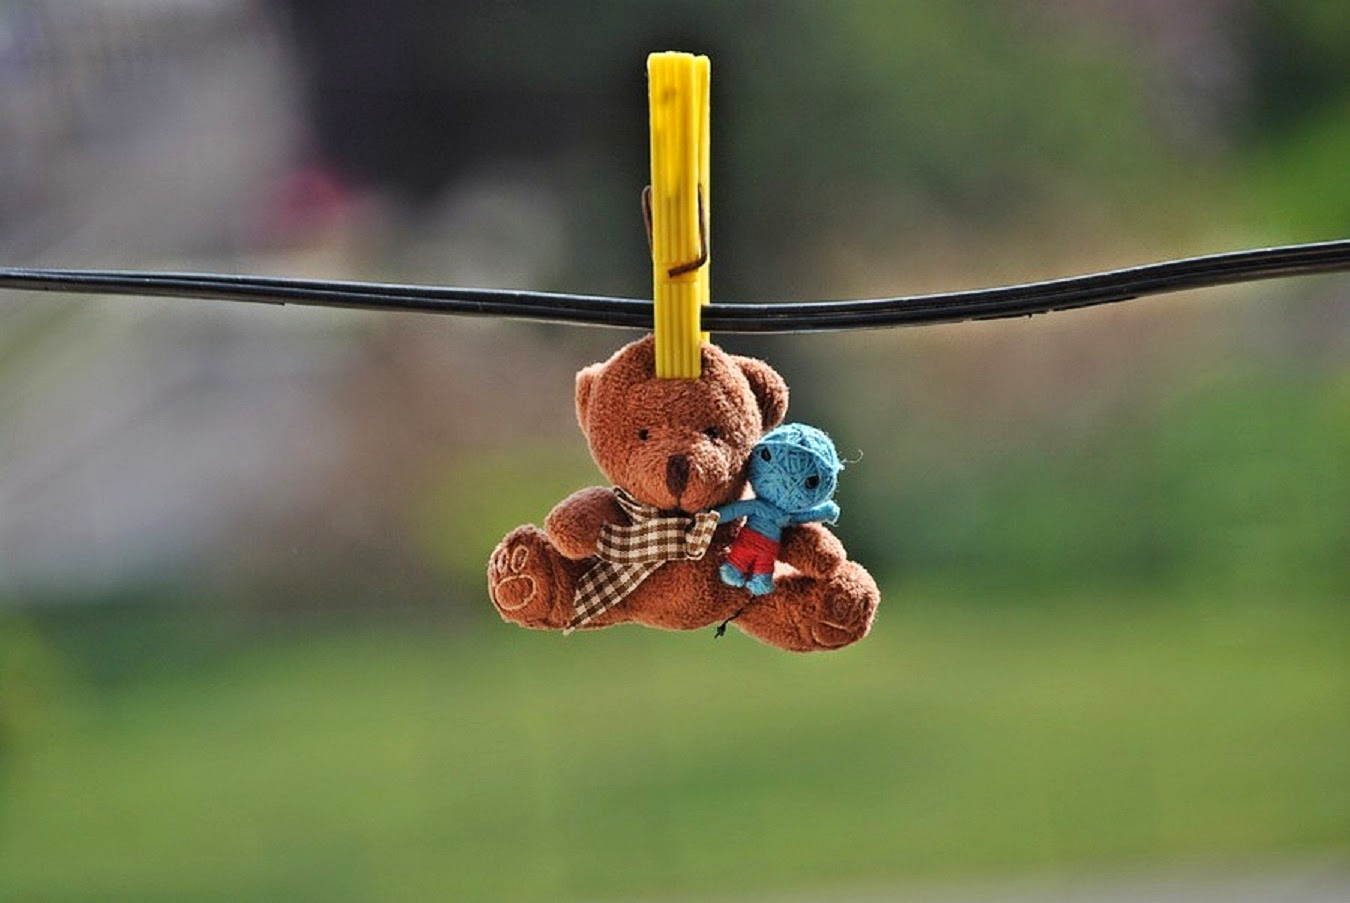 Teddy-clipped-hanging-with-cute-friend-1350x903.jpg